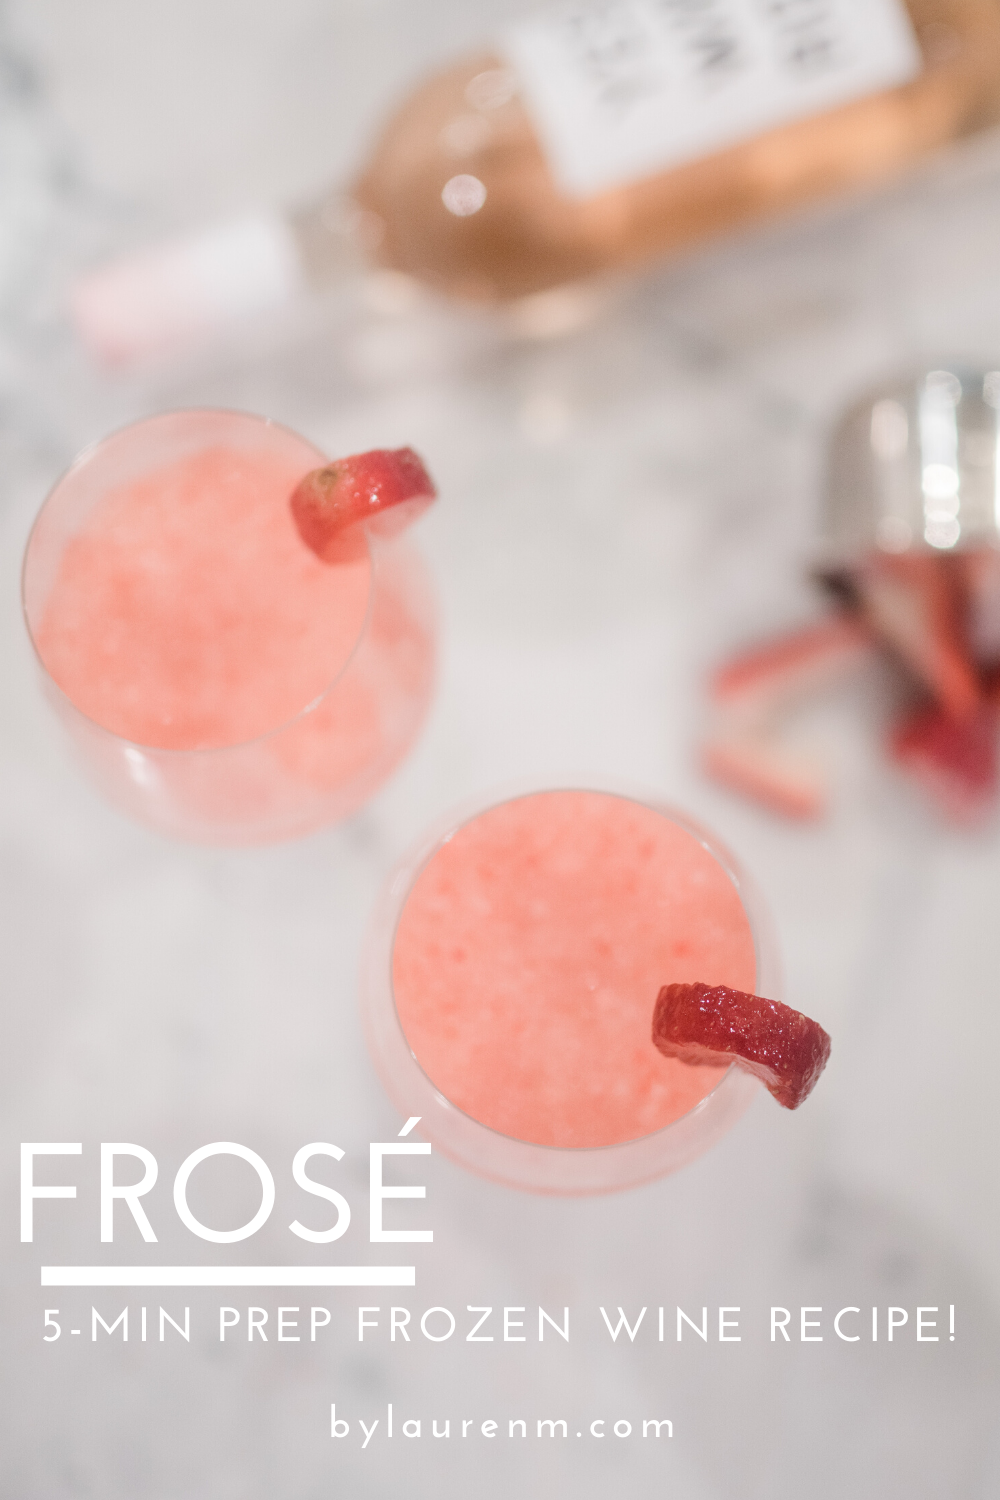 Virginia blogger, Lauren Dix, shares her quick and easy 5 minute prep frose recipe! Get ready to enjoy the most delicious frozen wine!